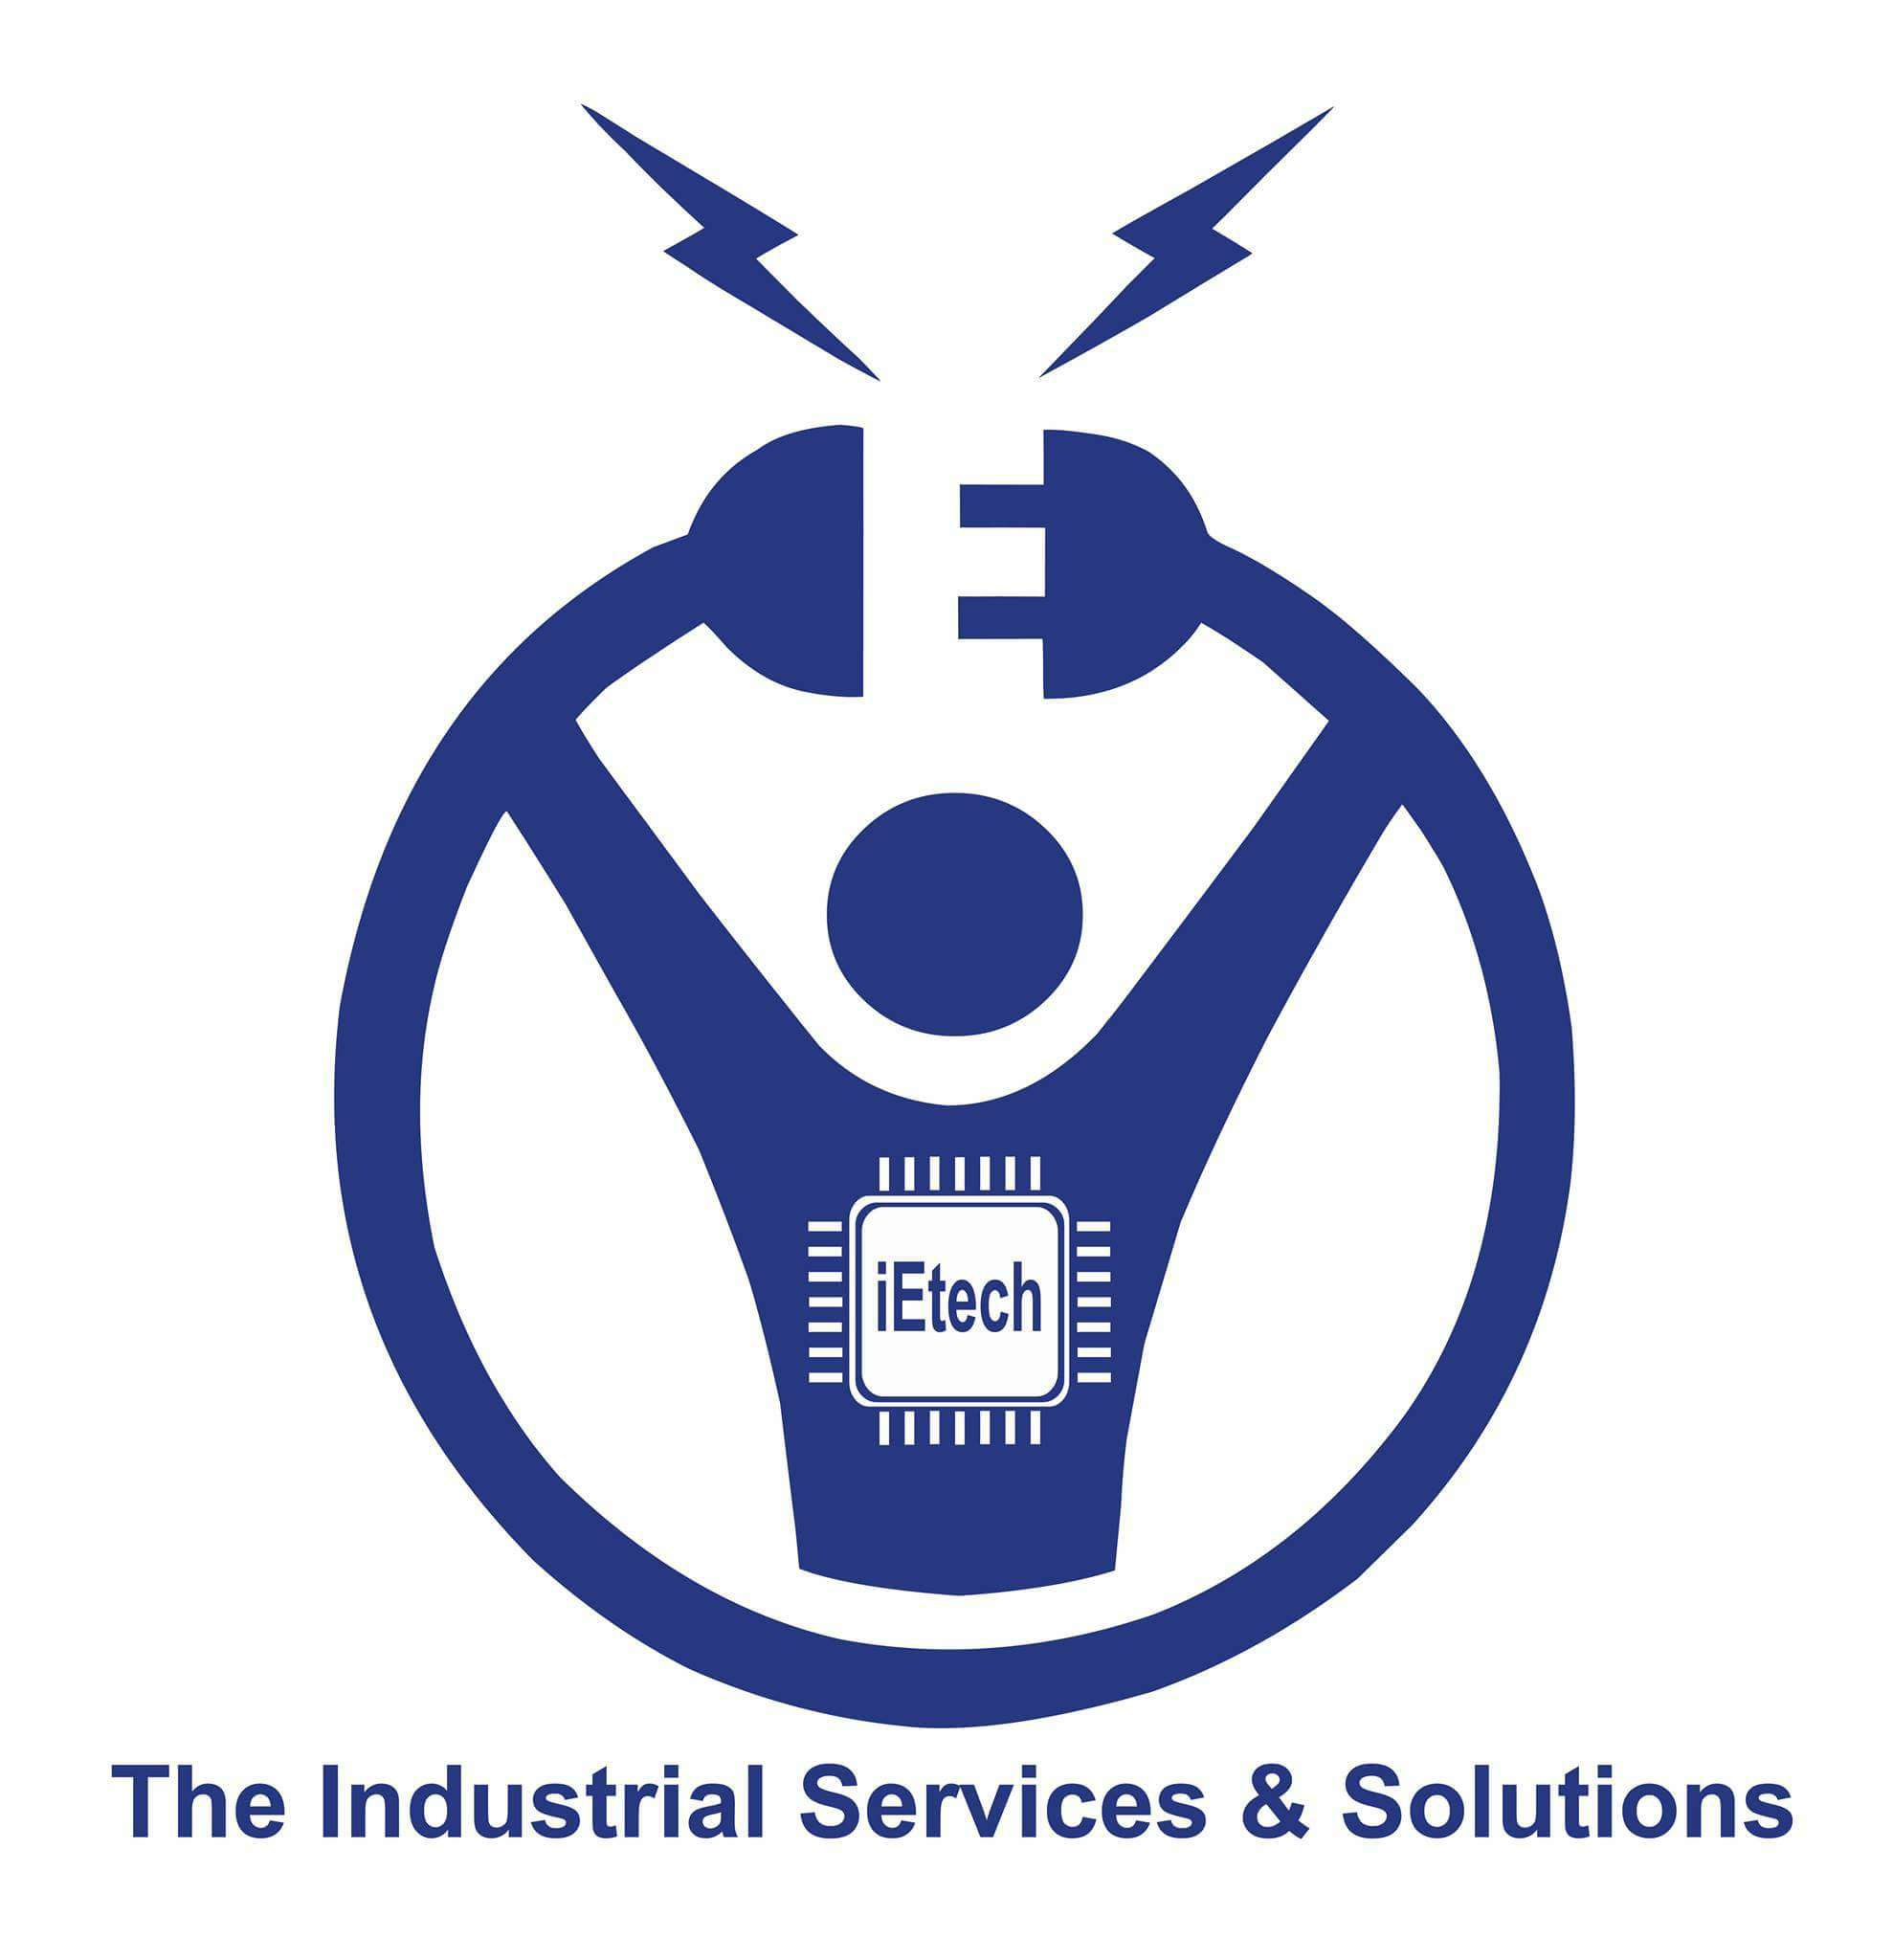 Ietech Industrial Machine Services And Automation Solutions in karimnagar